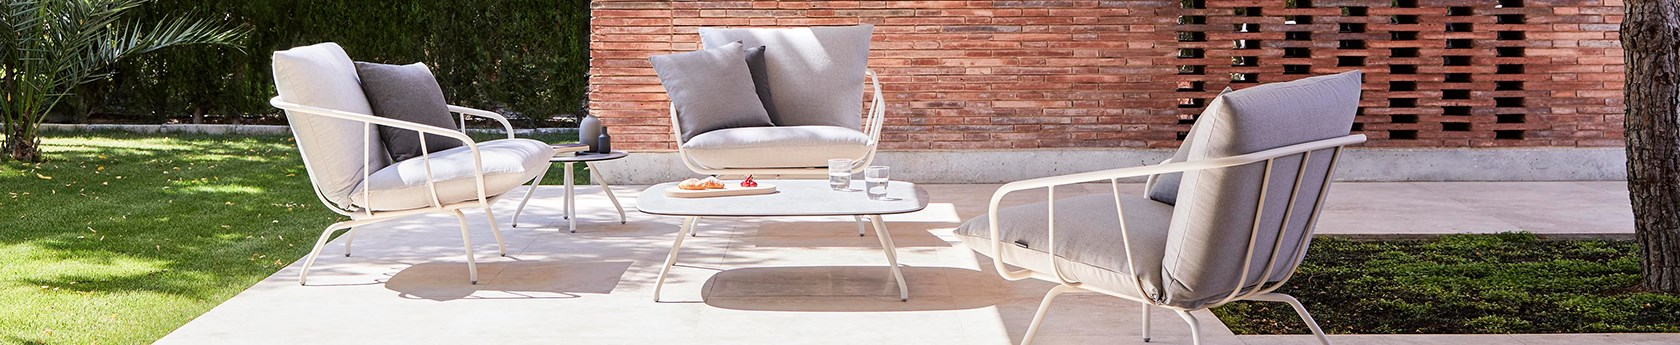 musola-nansa-outdoor-furniture-1680.jpg